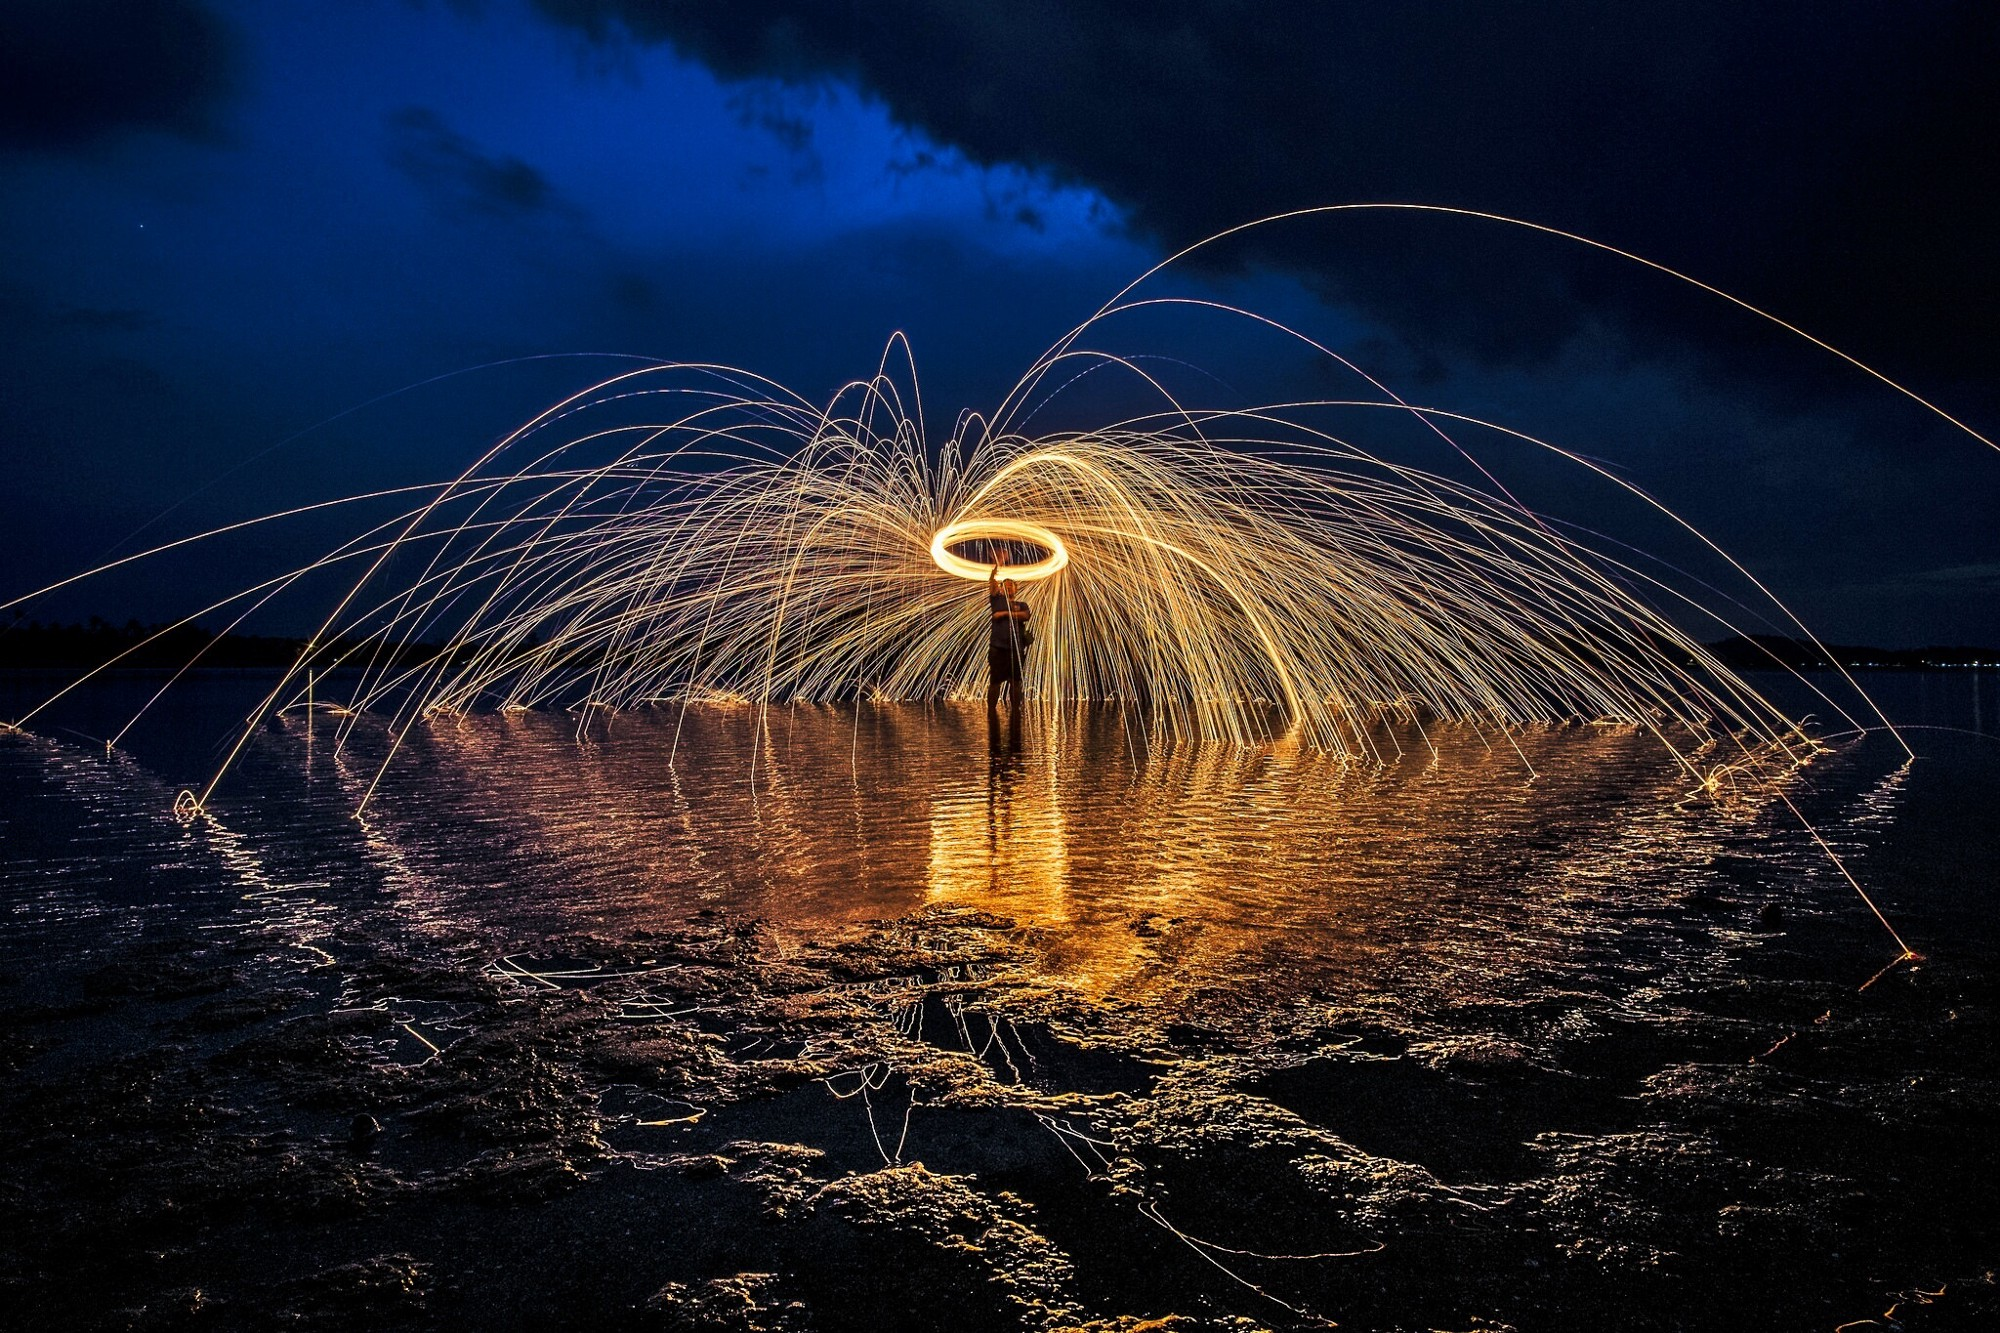 A man stands in water at night, spinning a ring of fire above his head, with sparks flying off.